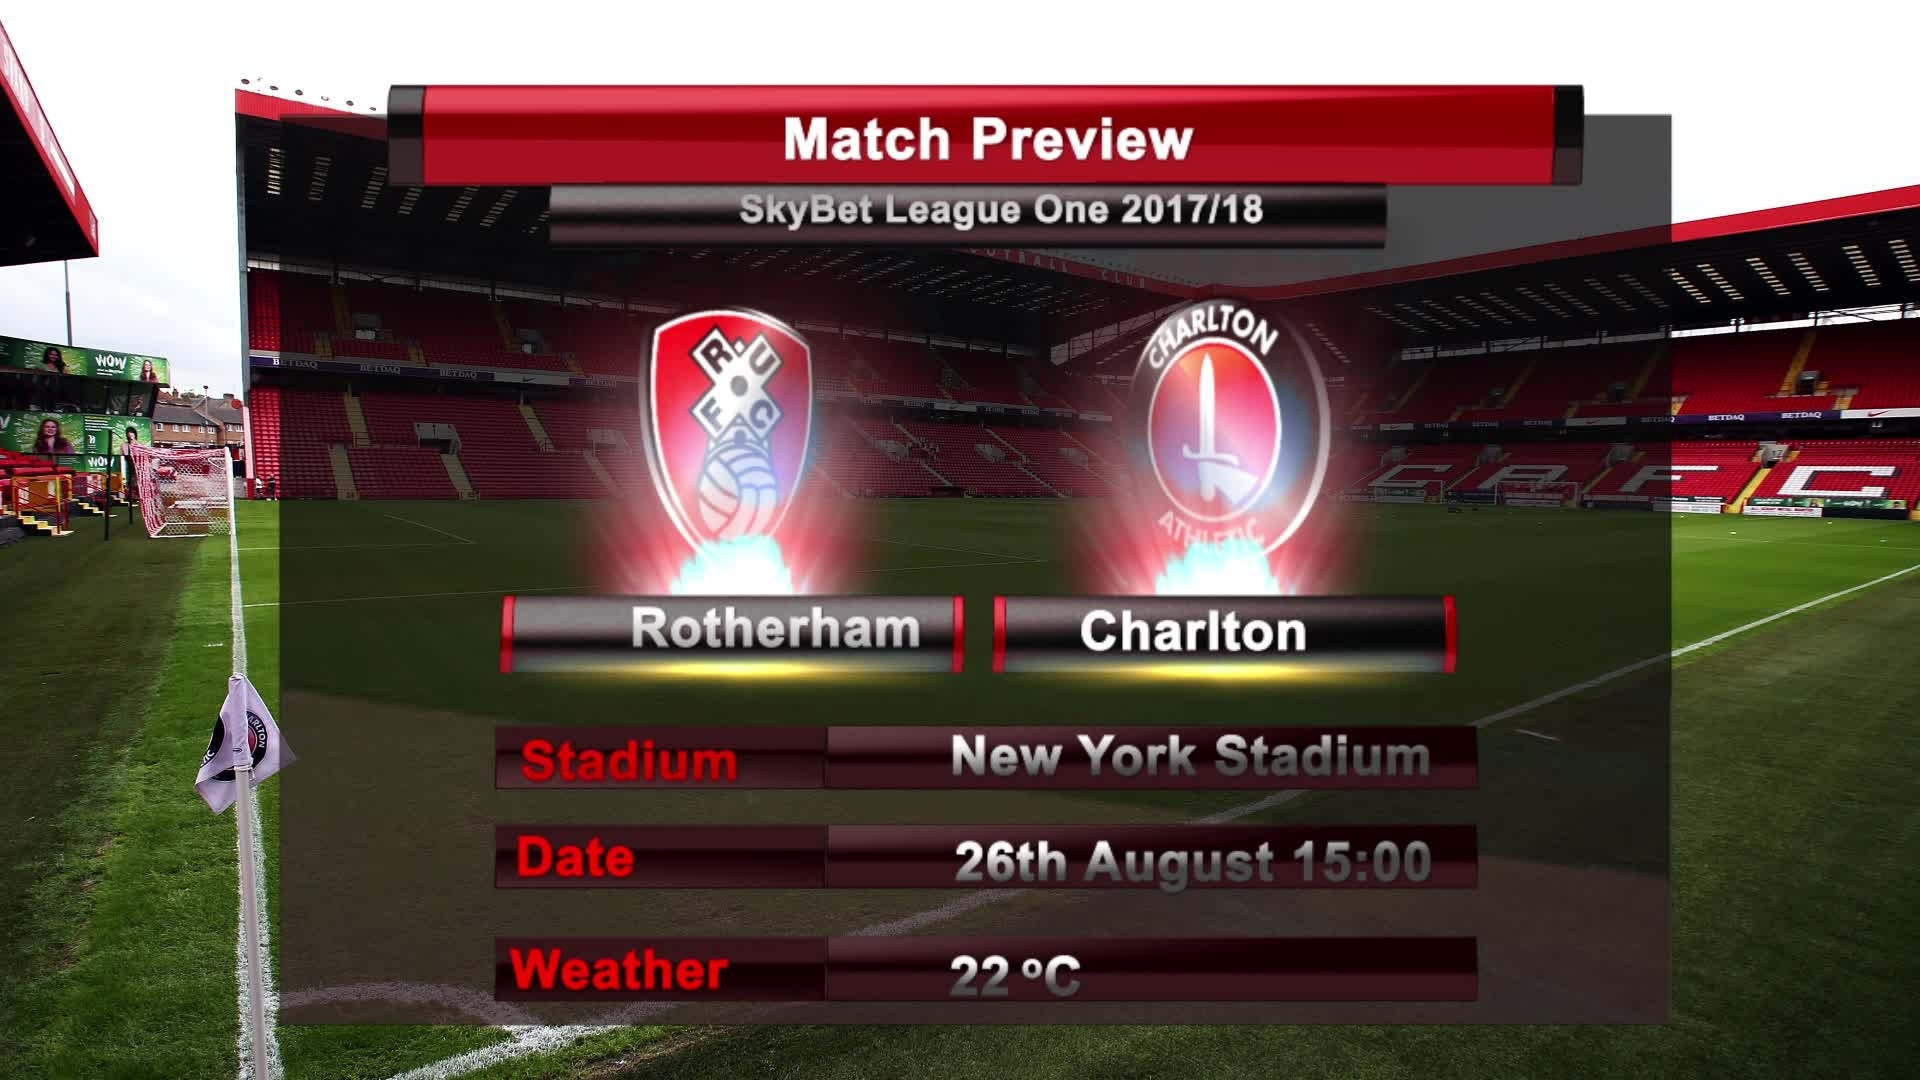 MATCH PREVIEW | Rotherham vs Charlton